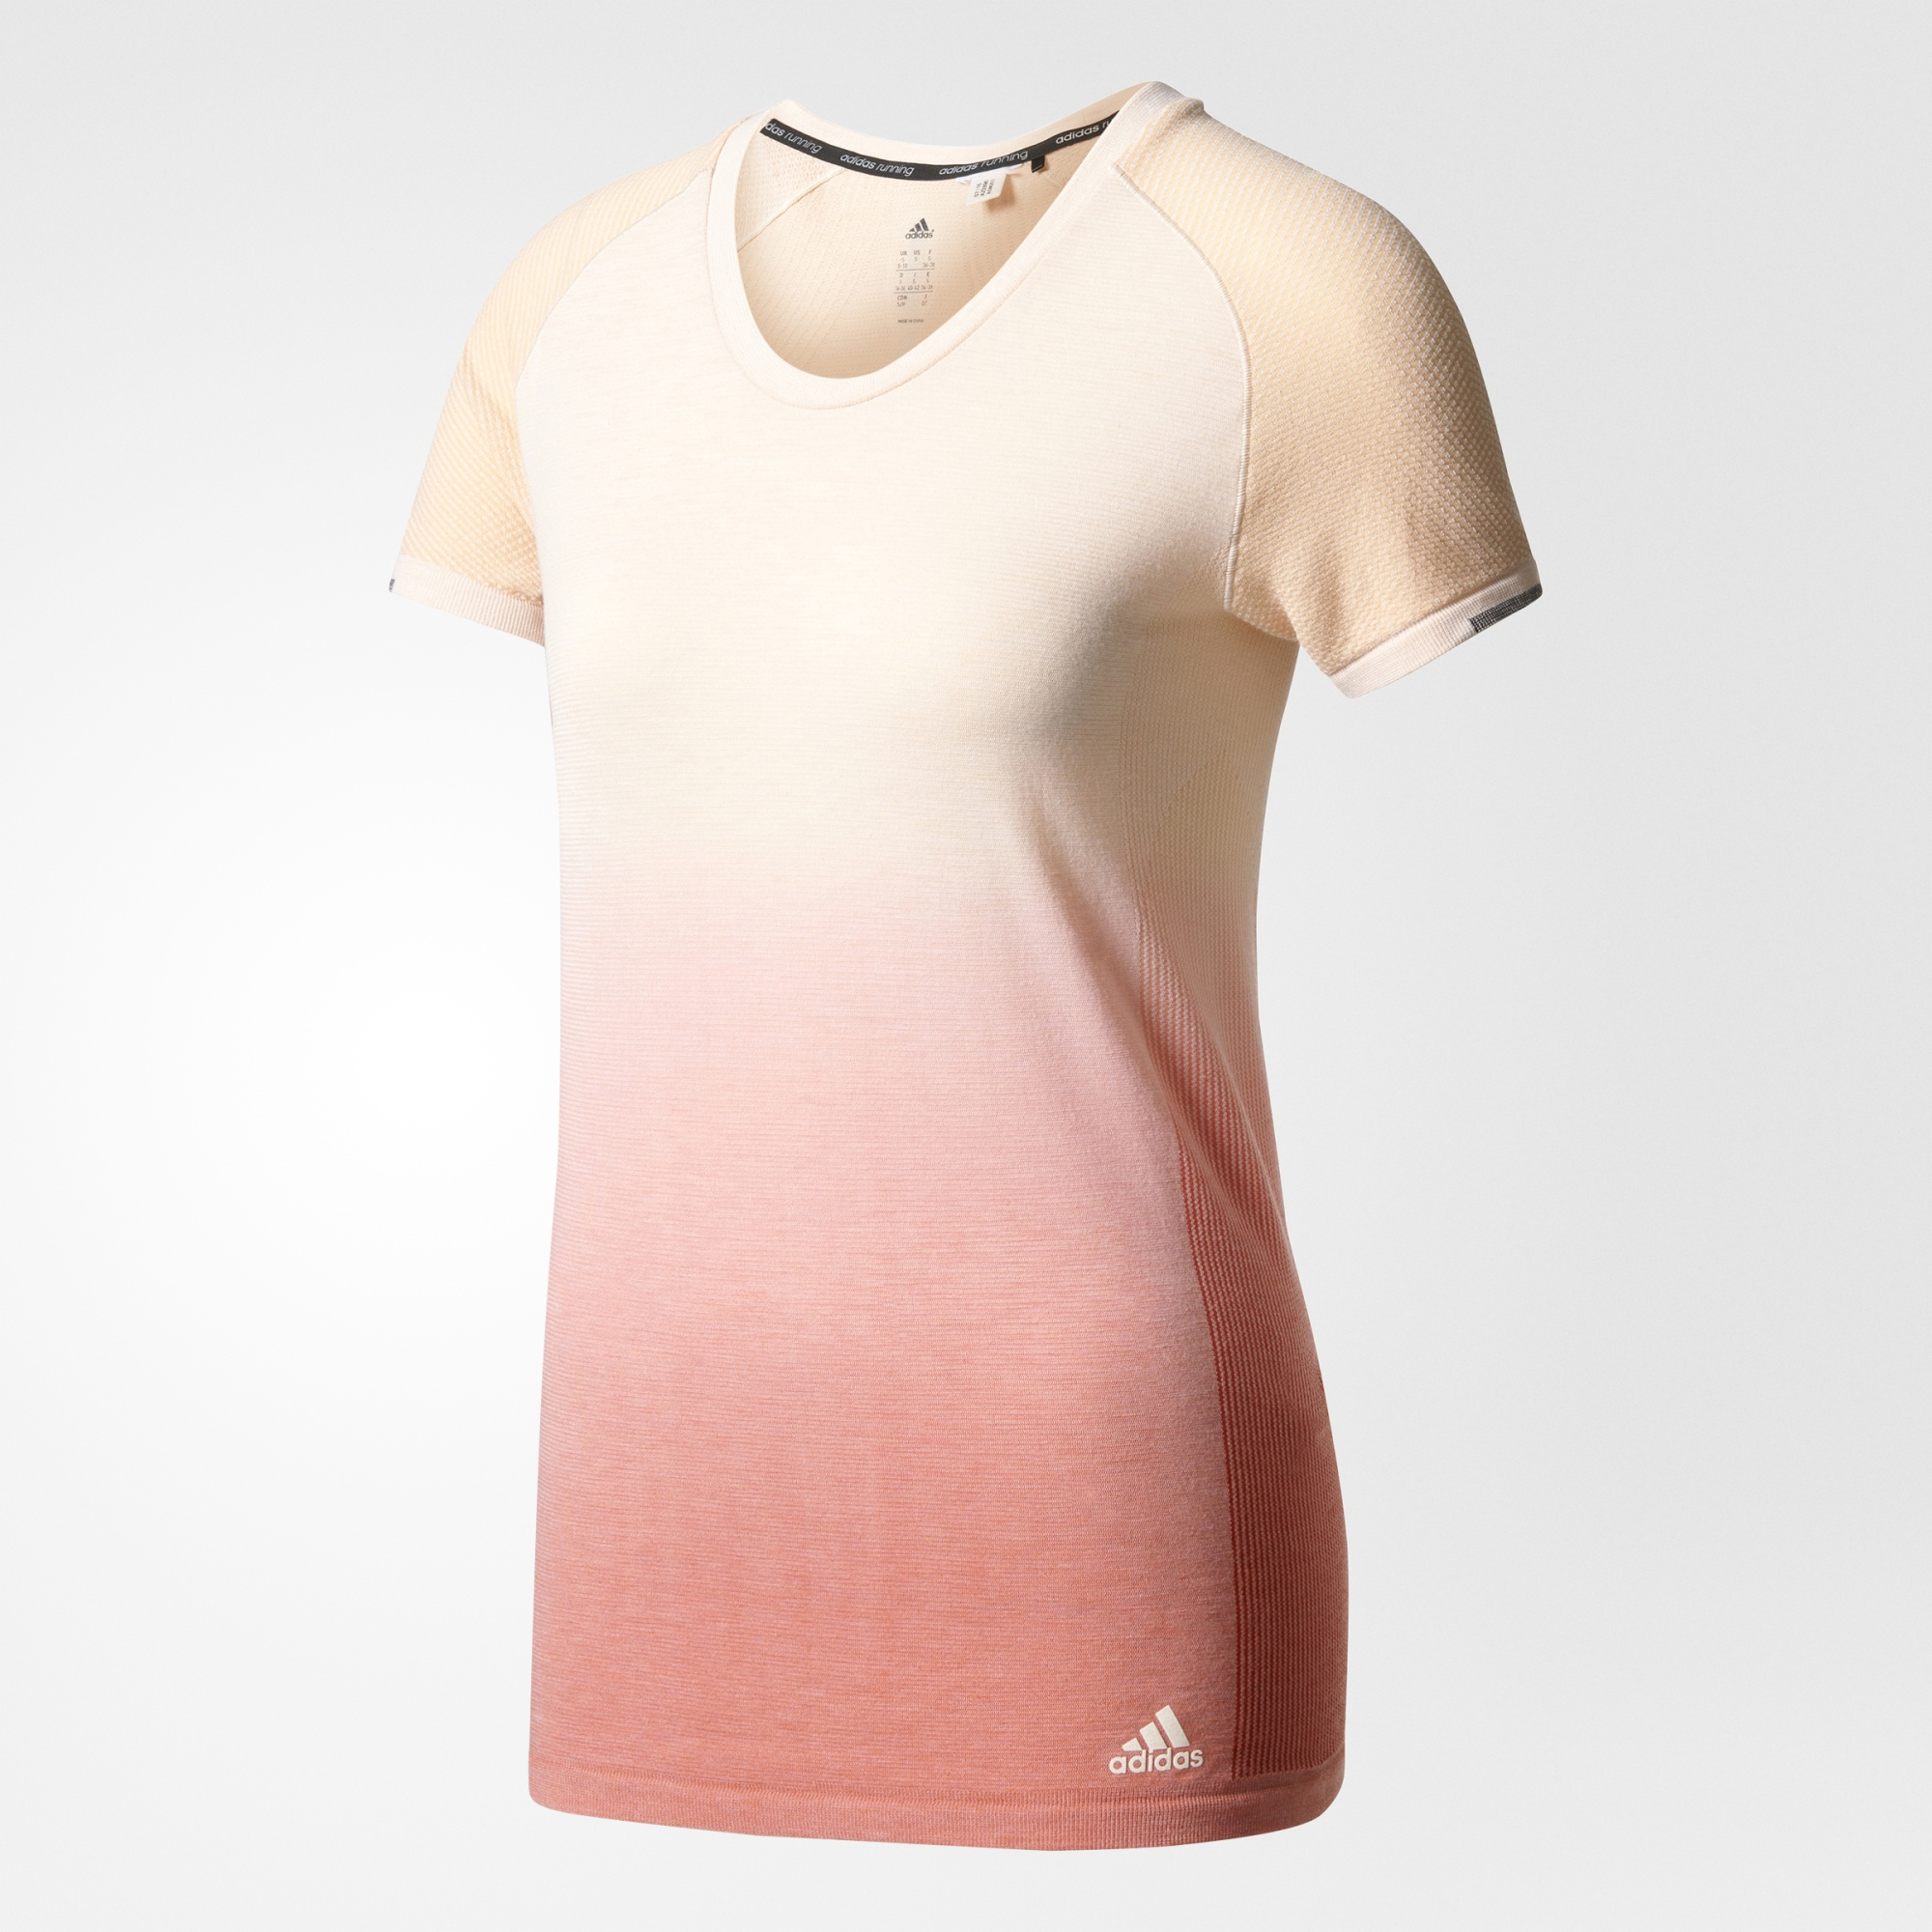 Available from 10.11 Adidas Comprehensive training t-shirt AZ2896 воланы для бадминтона adidas d training 79 перо быстрая скорость